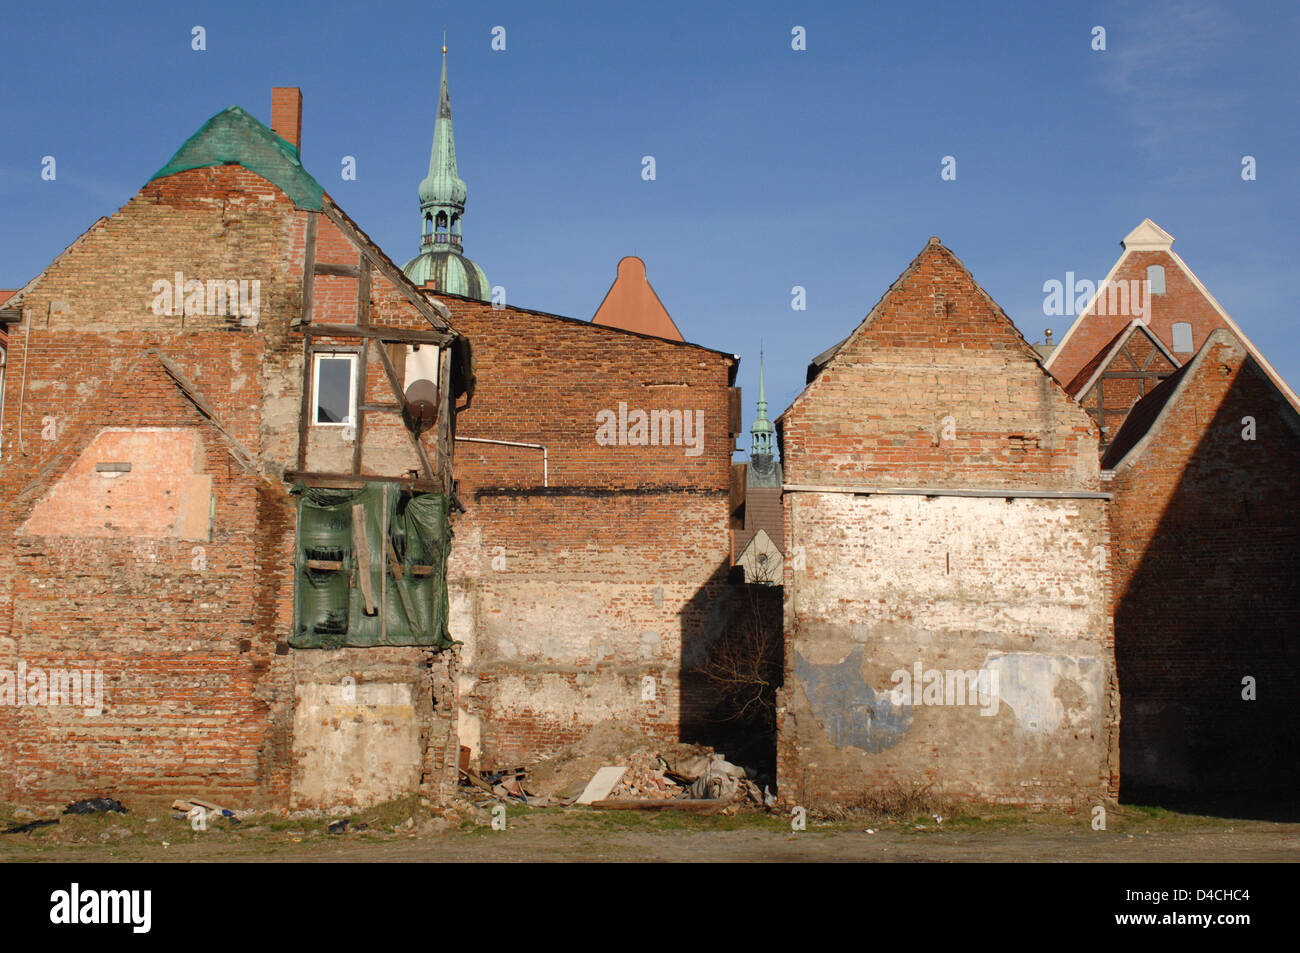 View on a house in need of rehabilitation in the Old Town of Stralsund, Germany, 04 February 2008. For years the - Stock Image